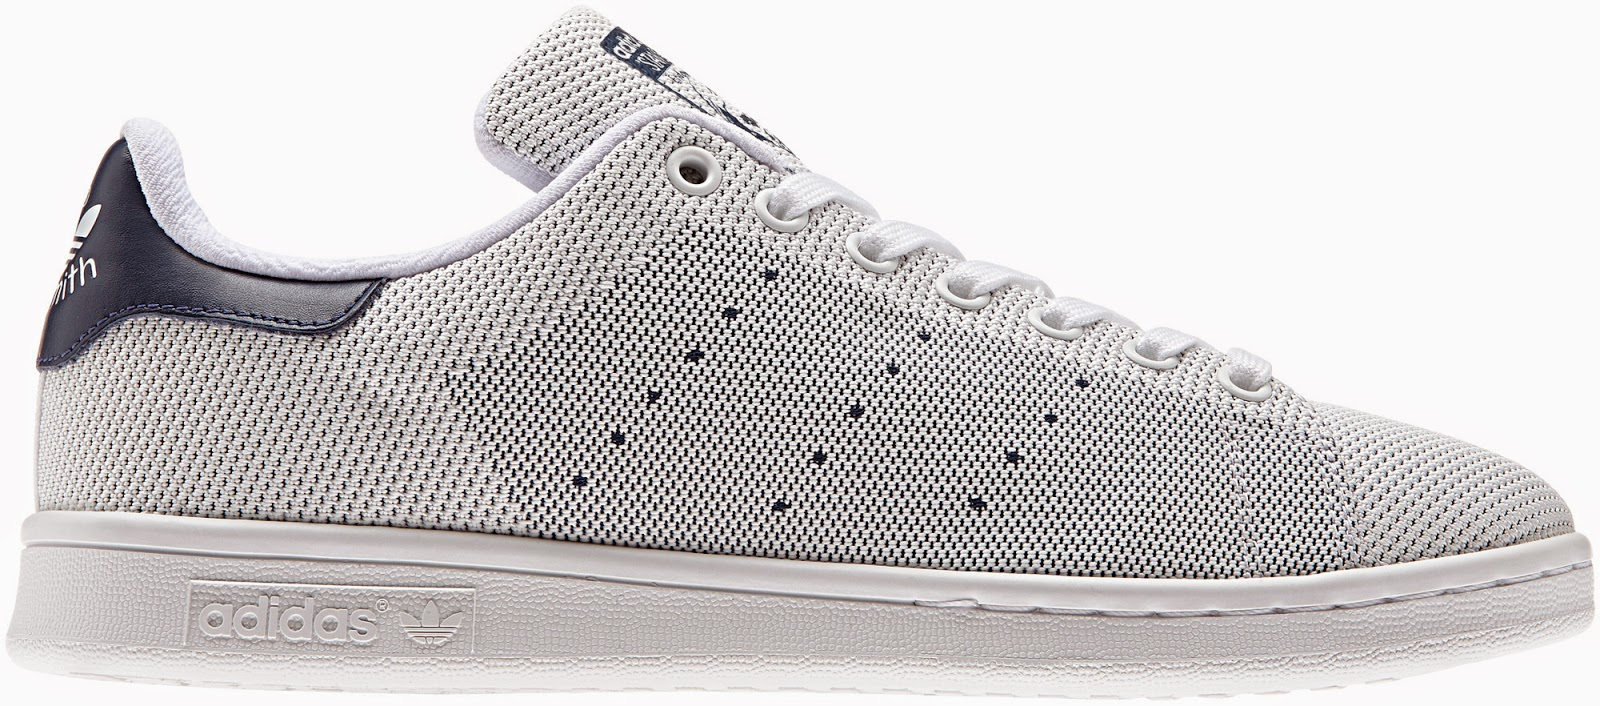 Adidas Stan Smith New Release